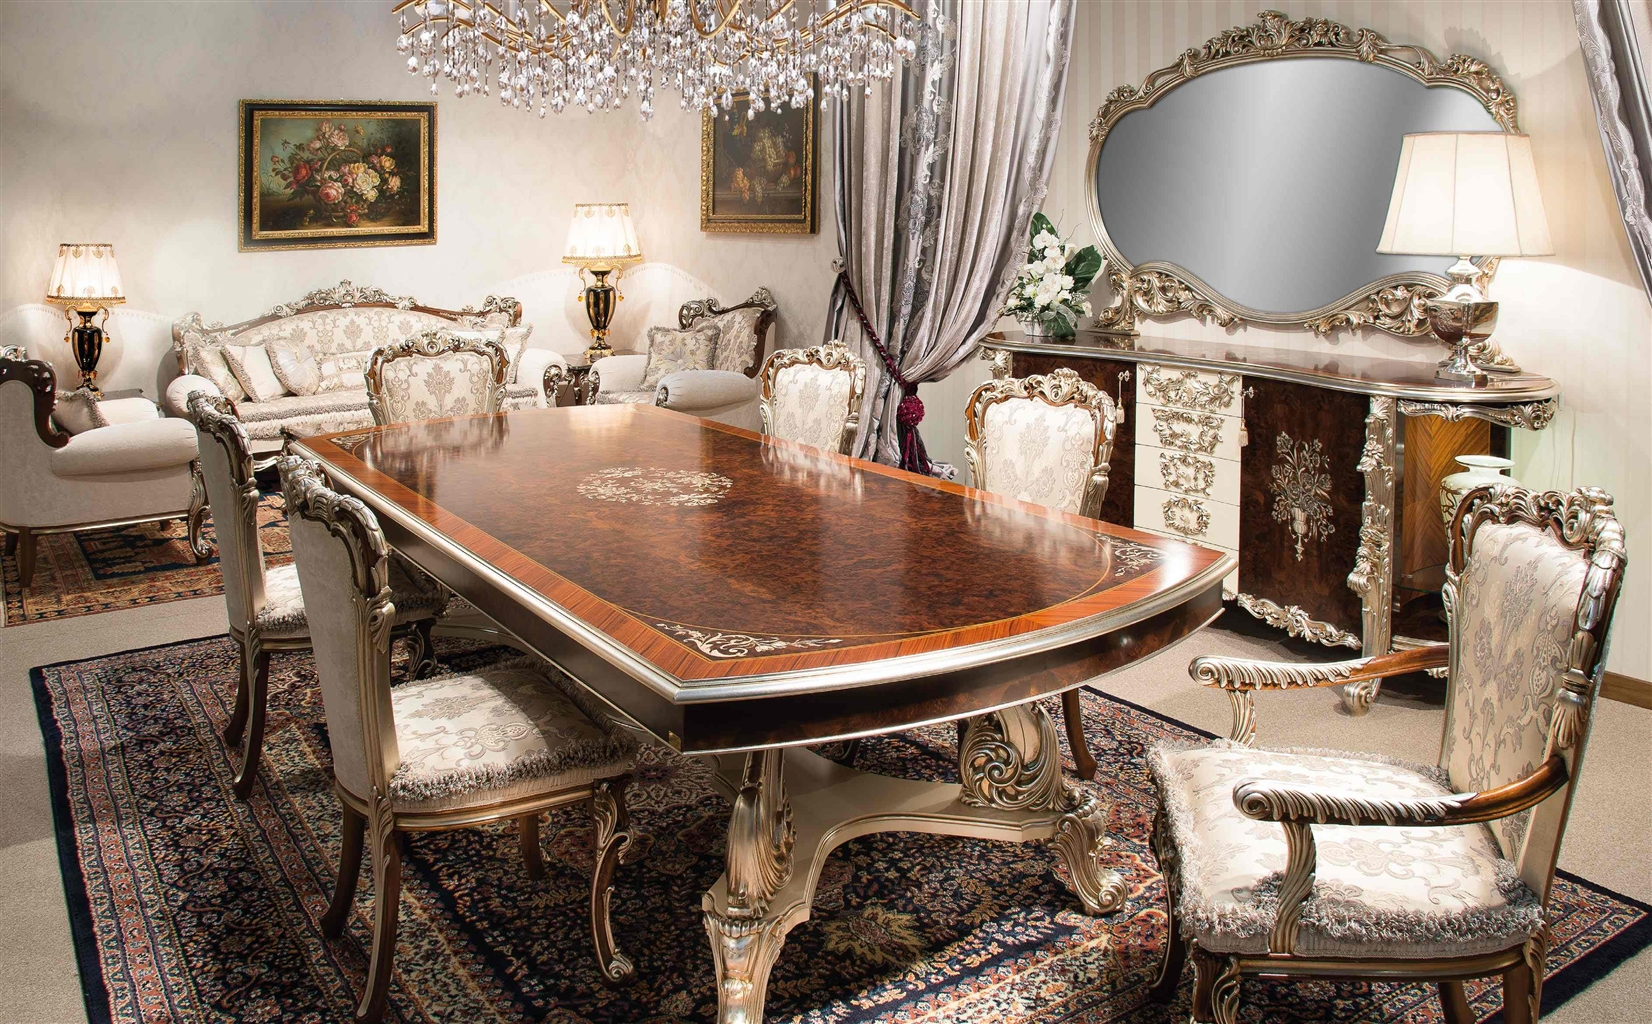 1 High End Italian Furniture Dining Room Set. Awesome High End Dining Room Furniture Gallery   Home Design Ideas